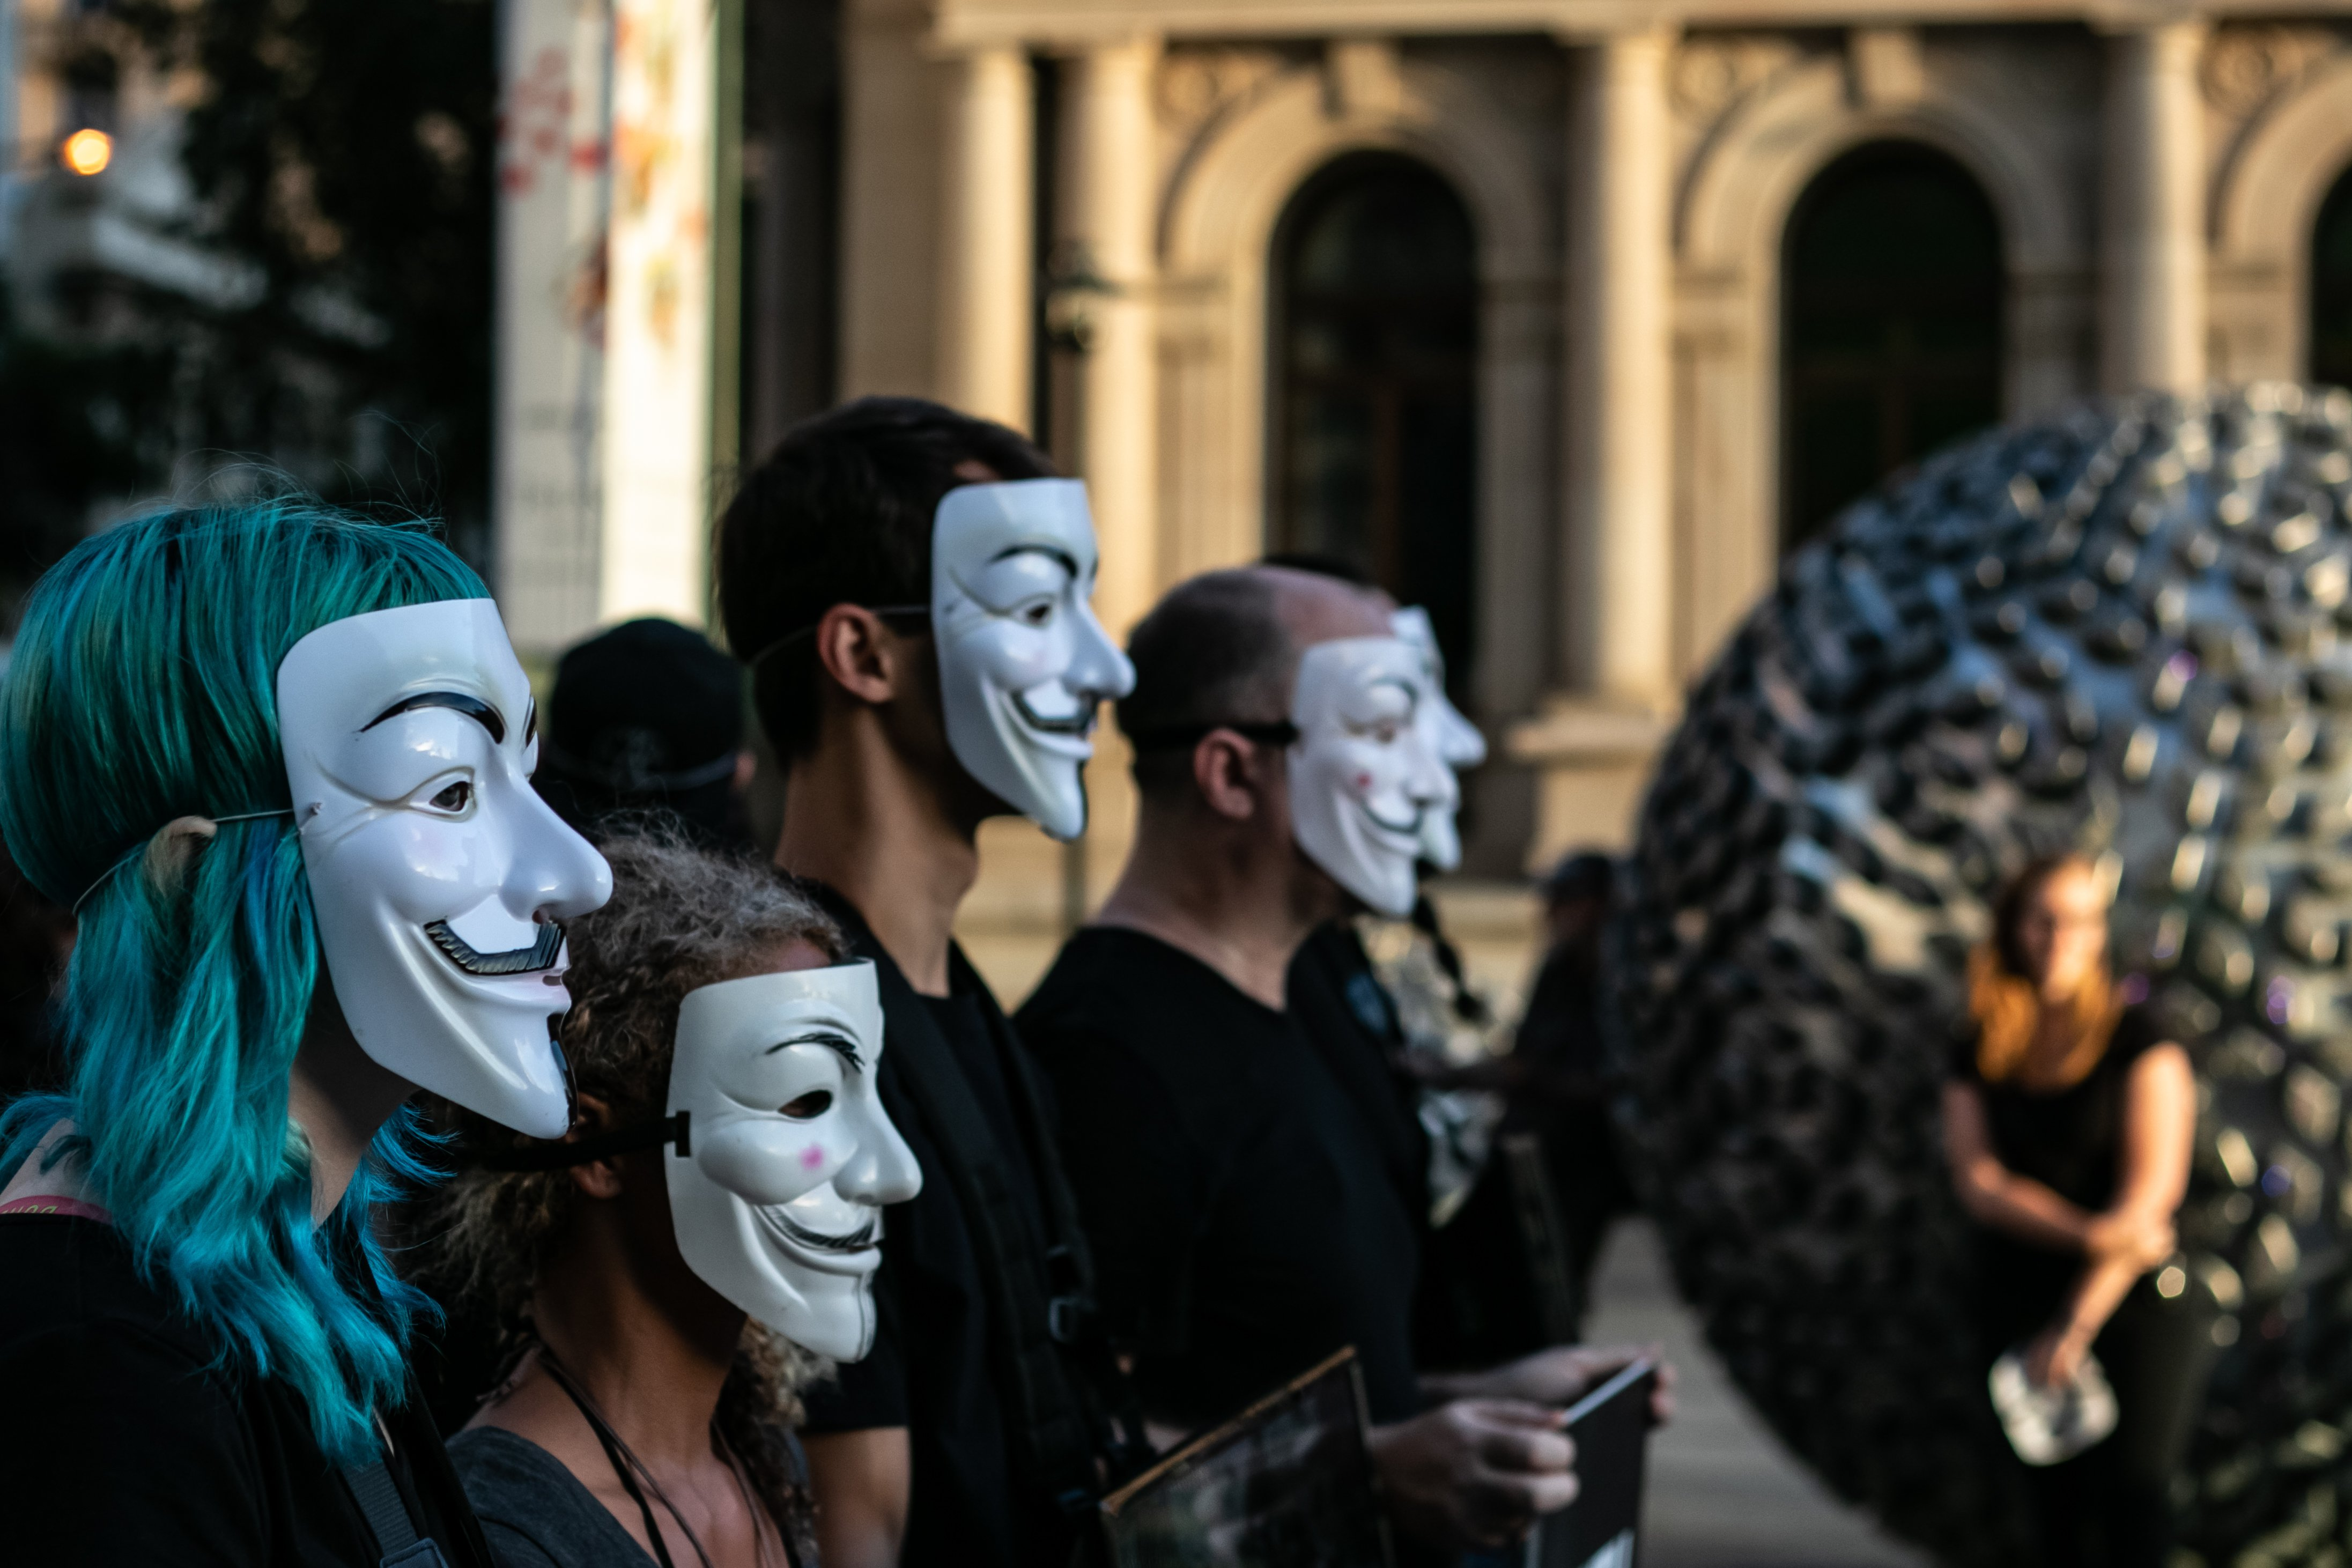 A group of people standing wearing Guy Fawkes mask and black tshirt